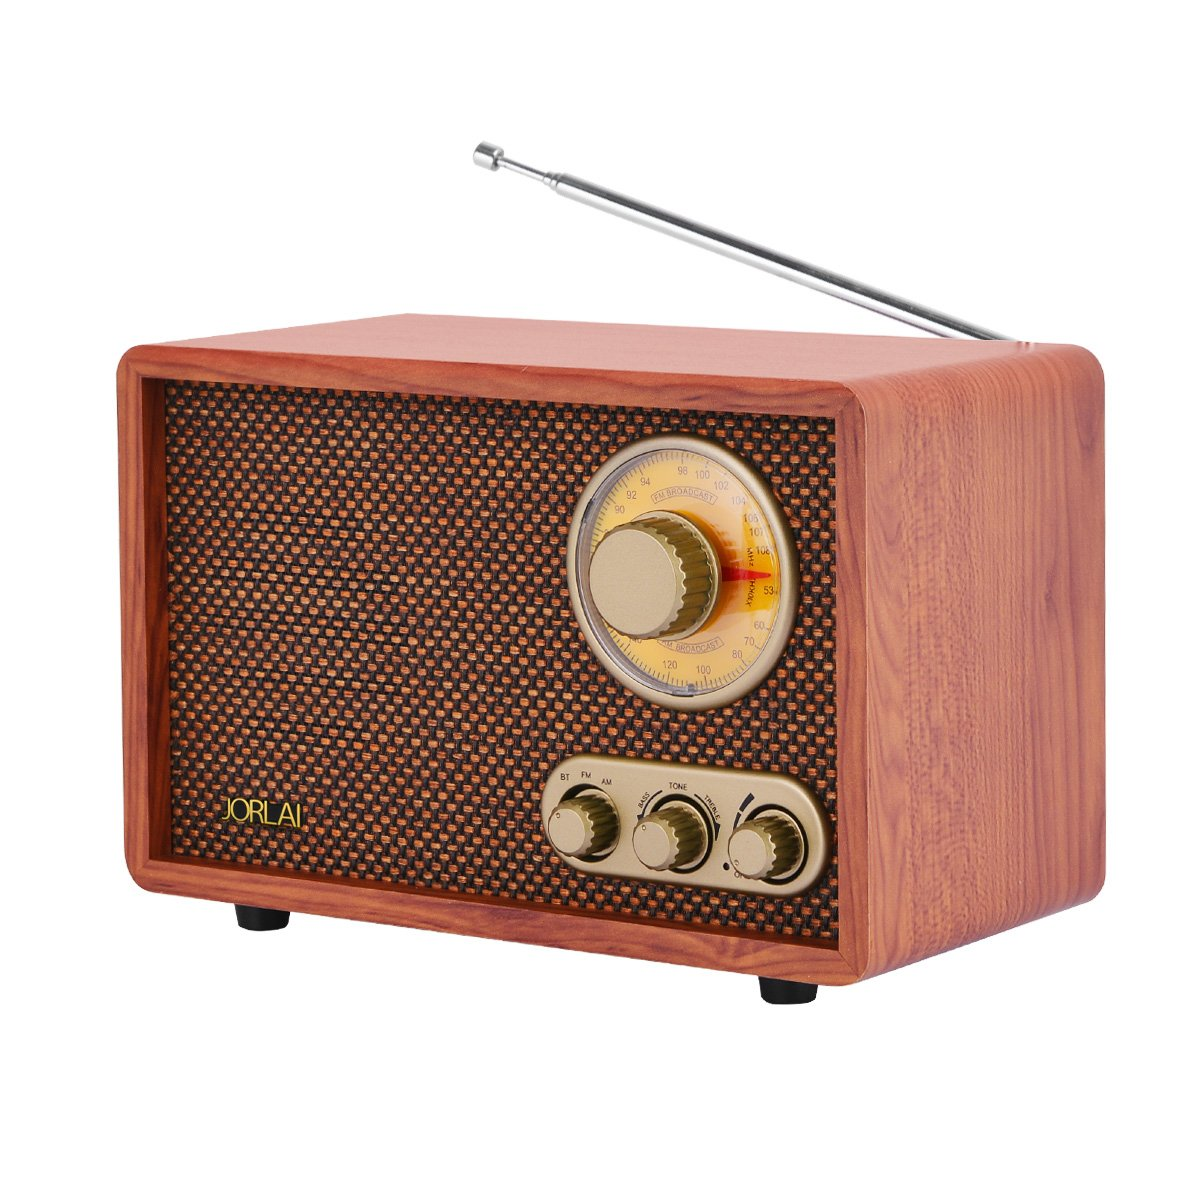 Radio de madera estilo retro vintage. AM/FM, Bluetooth